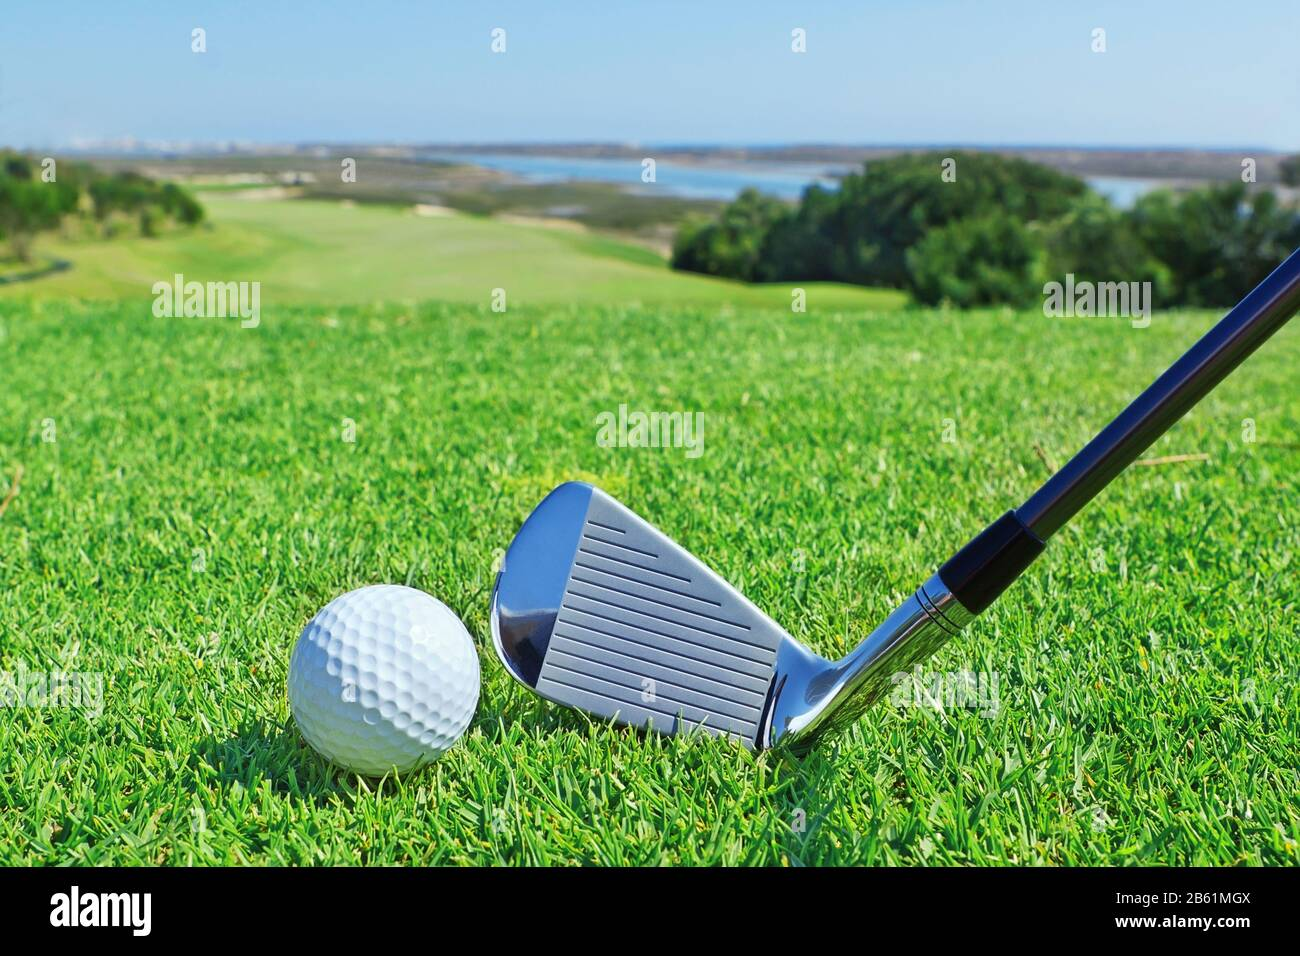 Golf Accessories On A Background Of A Green Golf Course Stock Photo Alamy